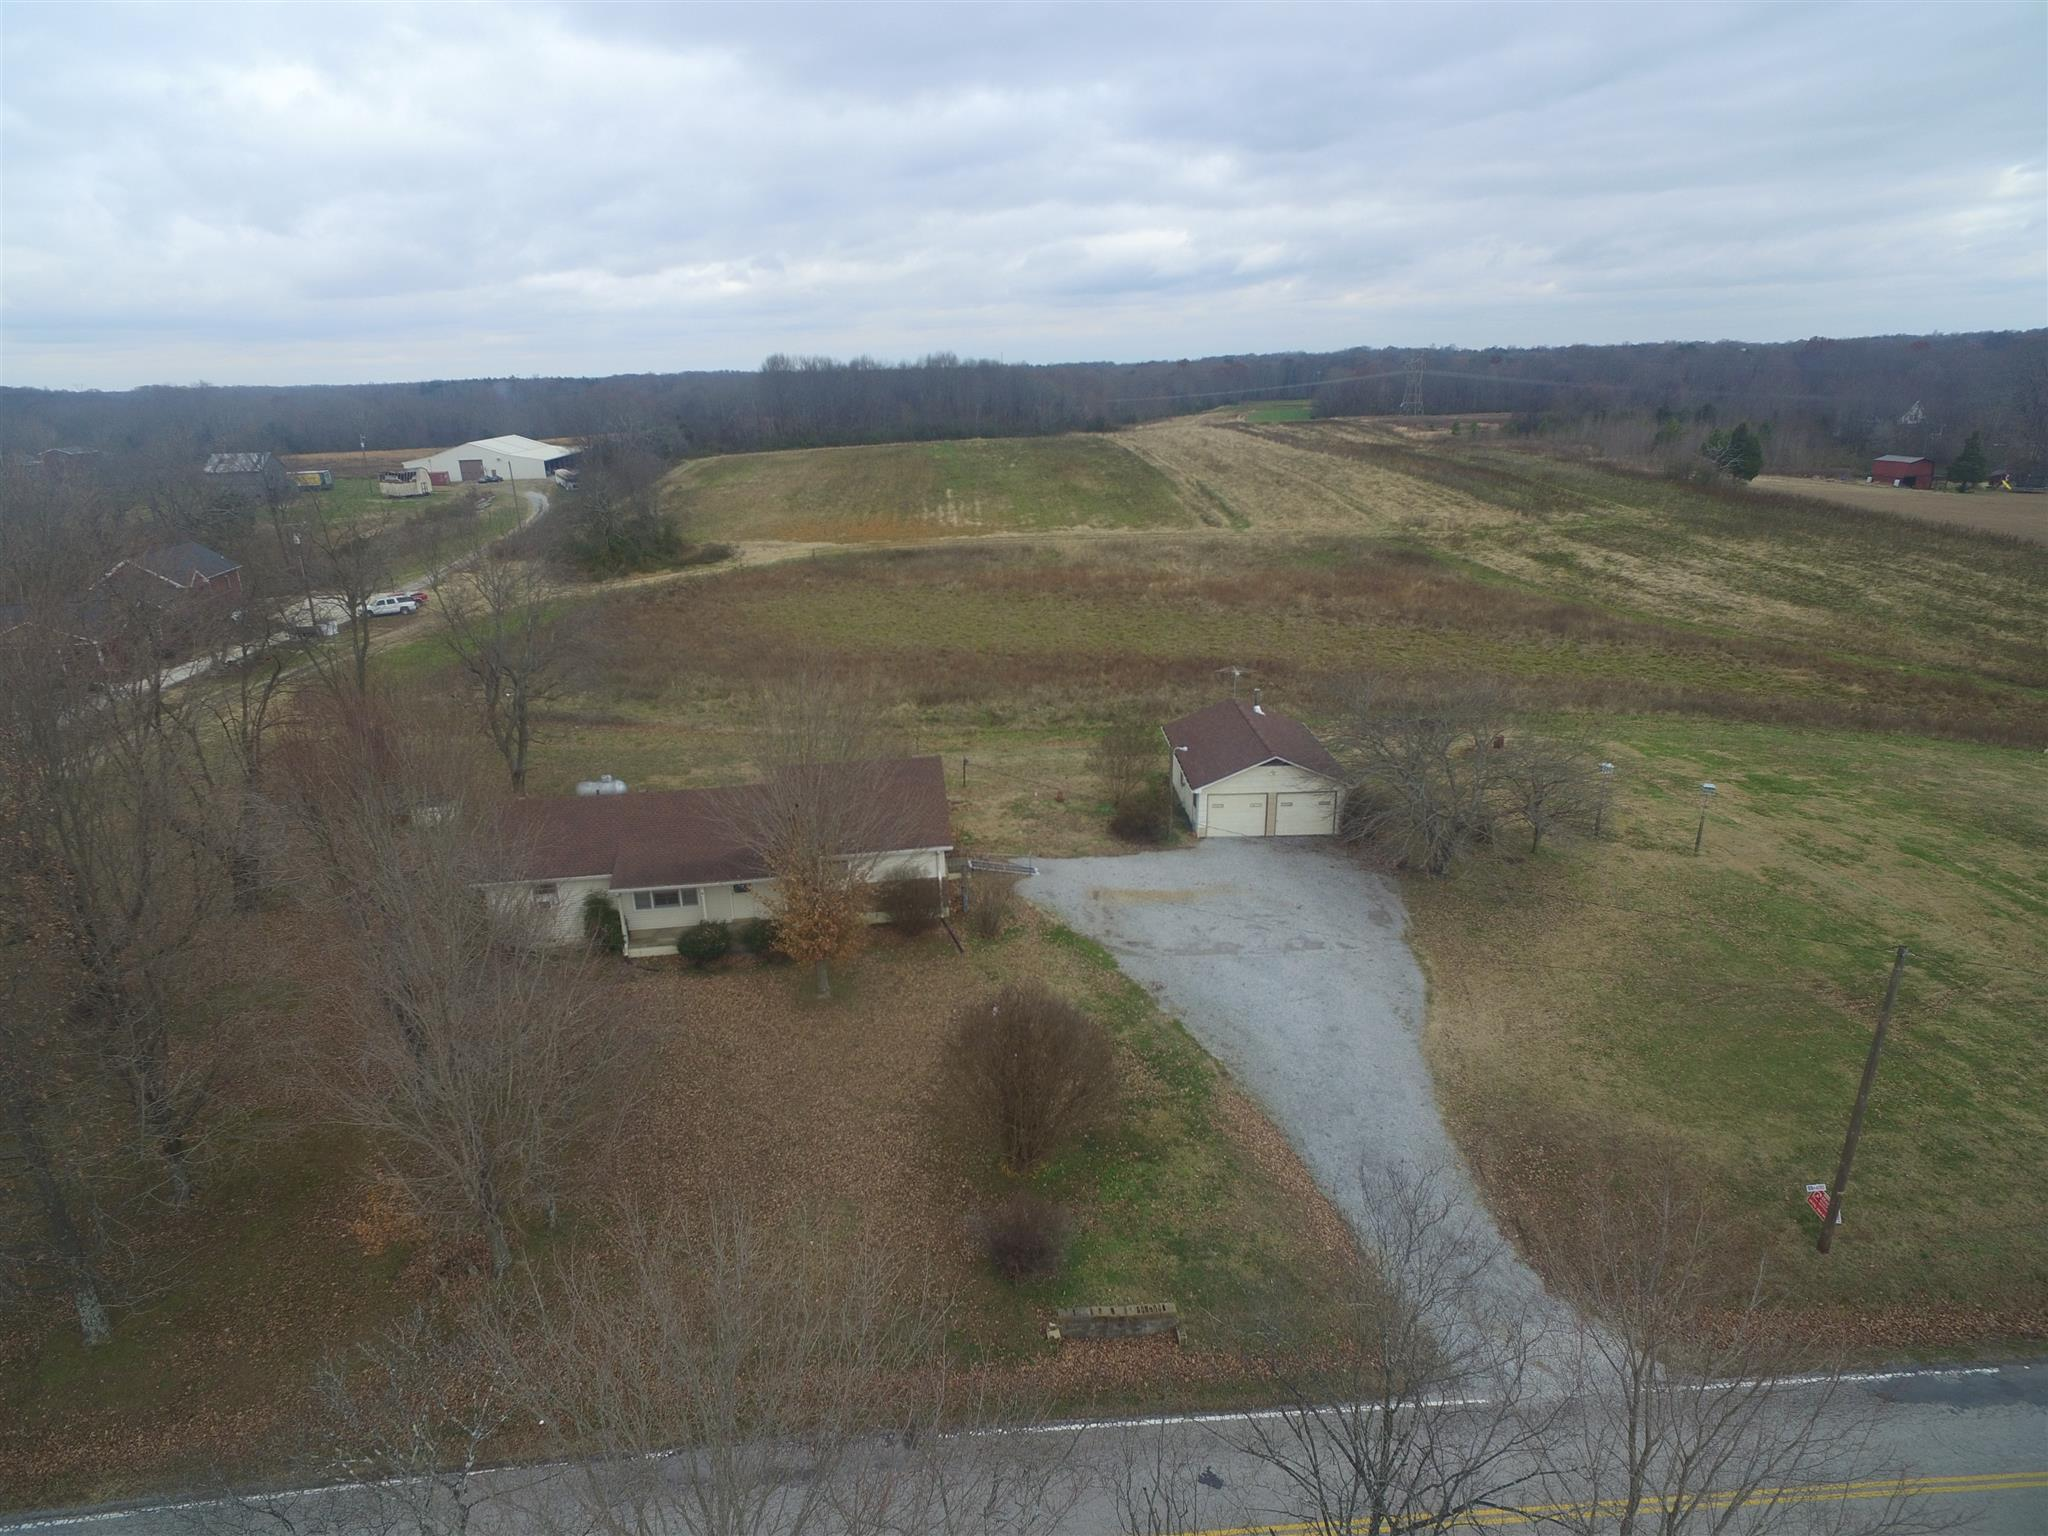 7205 Greer Rd, Goodlettsville, TN 37072 - Goodlettsville, TN real estate listing